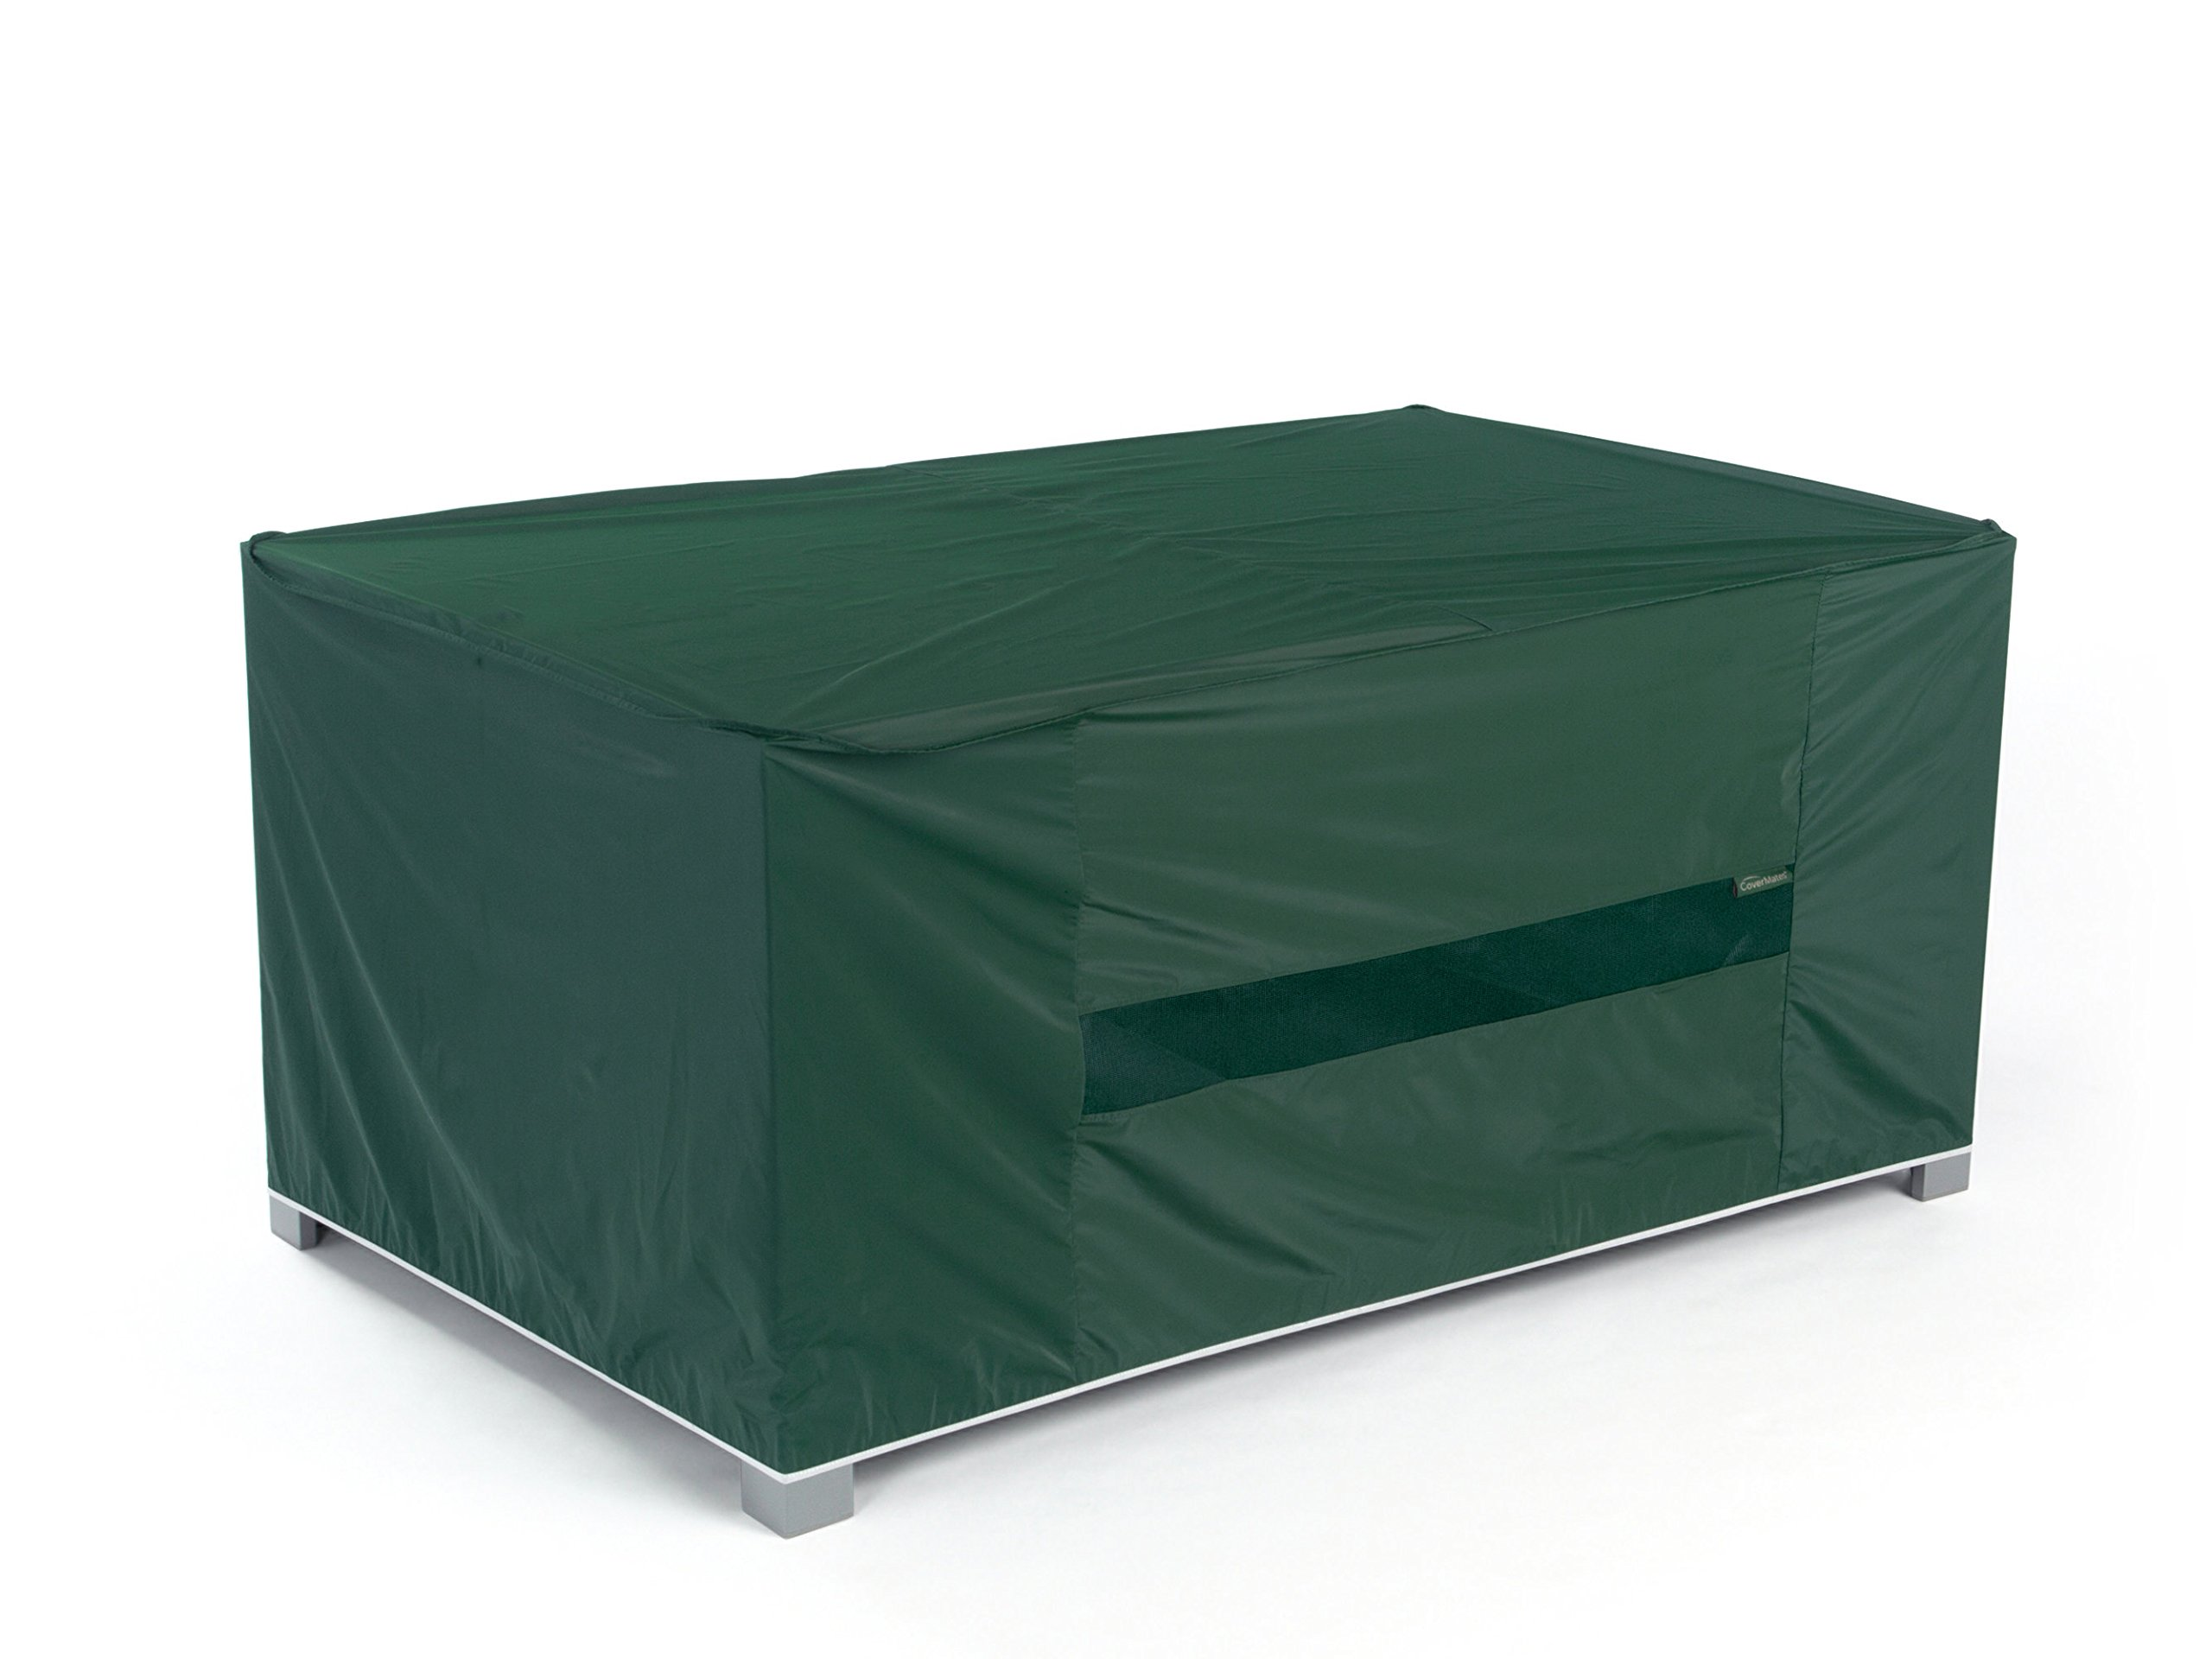 Covermates - Rectangular Dining Table Cover - 138W x 68D x 30H - Classic - 12-Gauge Vinyl - Elastic Hem - Mesh Vent for Breathability - 2 YR Warranty - Weather Resistant - Green by Covermates